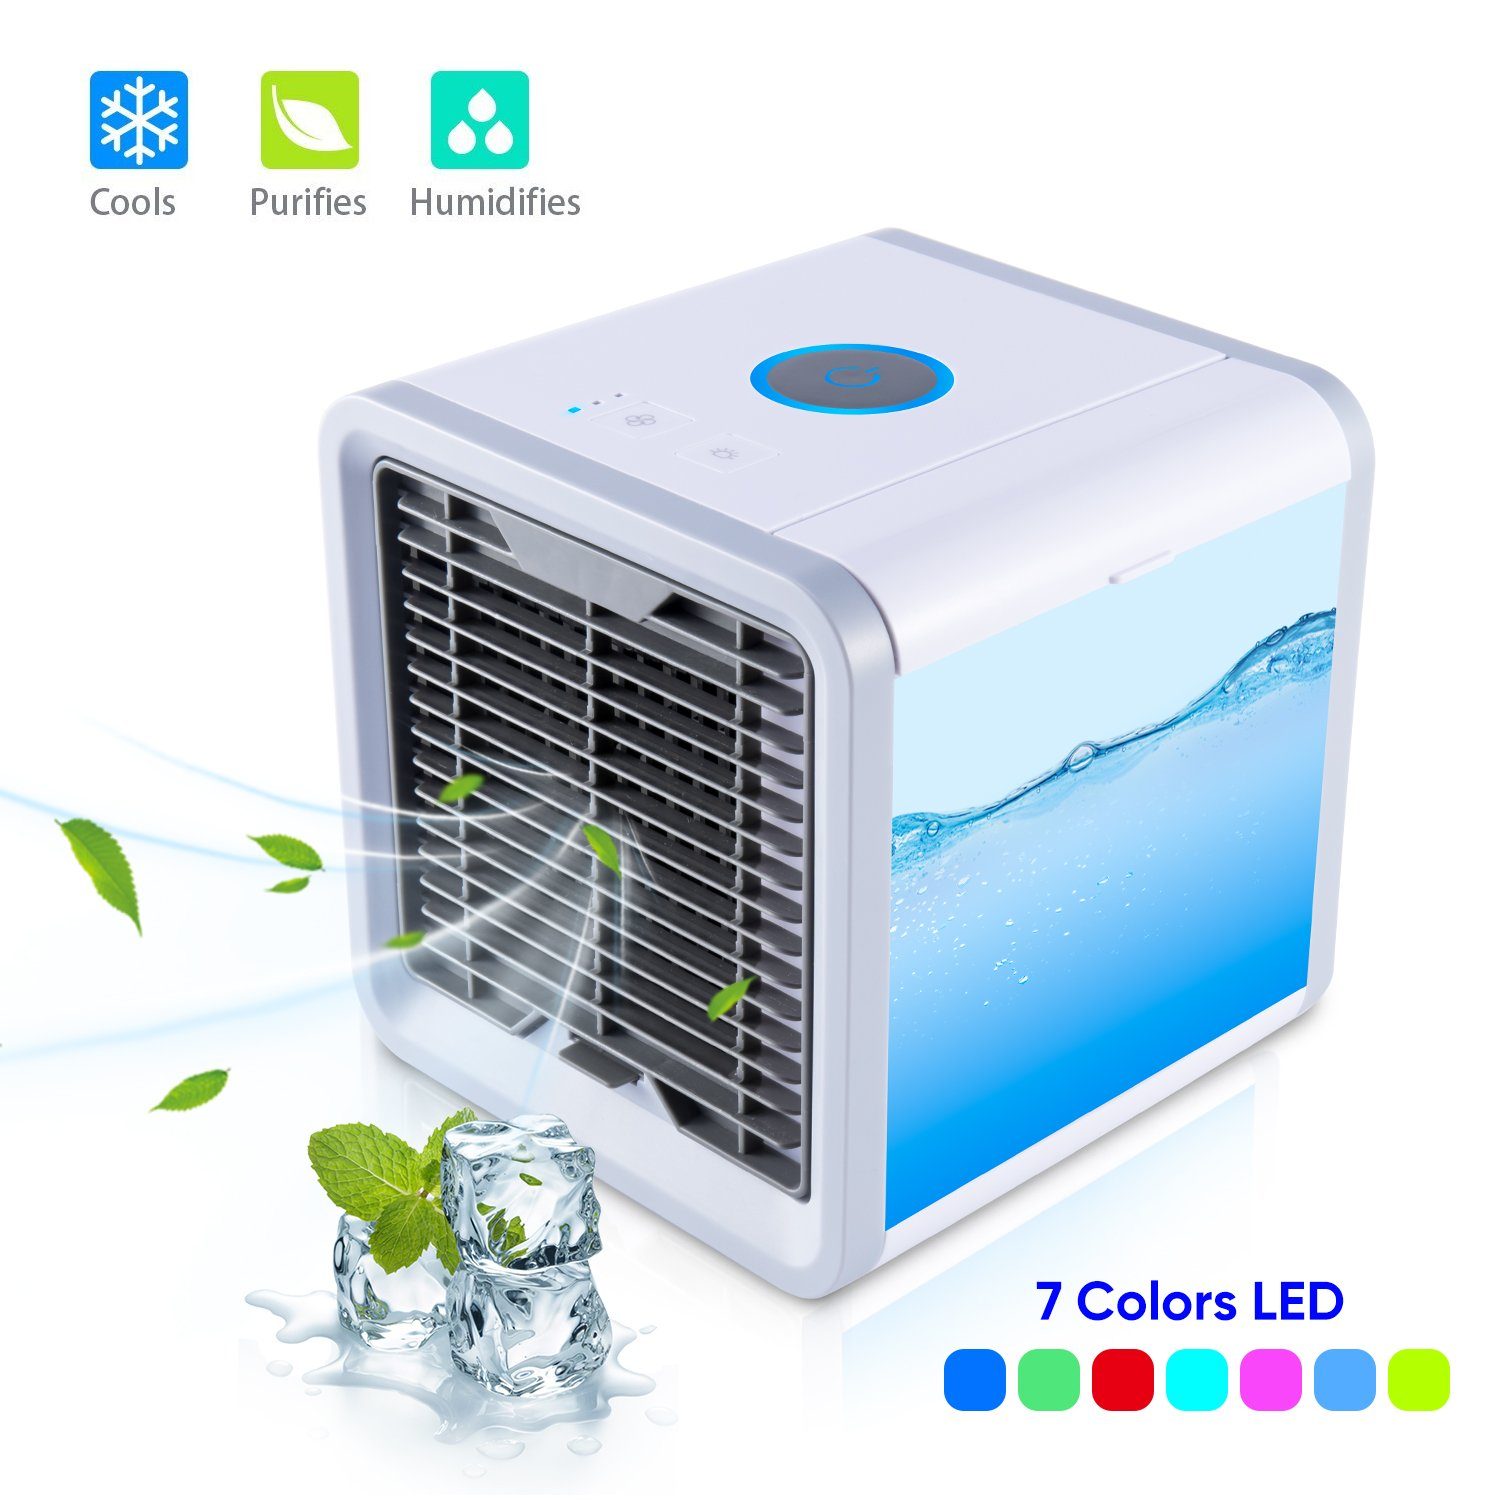 MOSCHE Personal Air Conditioner, Air Personal Space Cooler with Humidifier and Air Purifier USB Mini Portable Air Conditioner (Pack1)